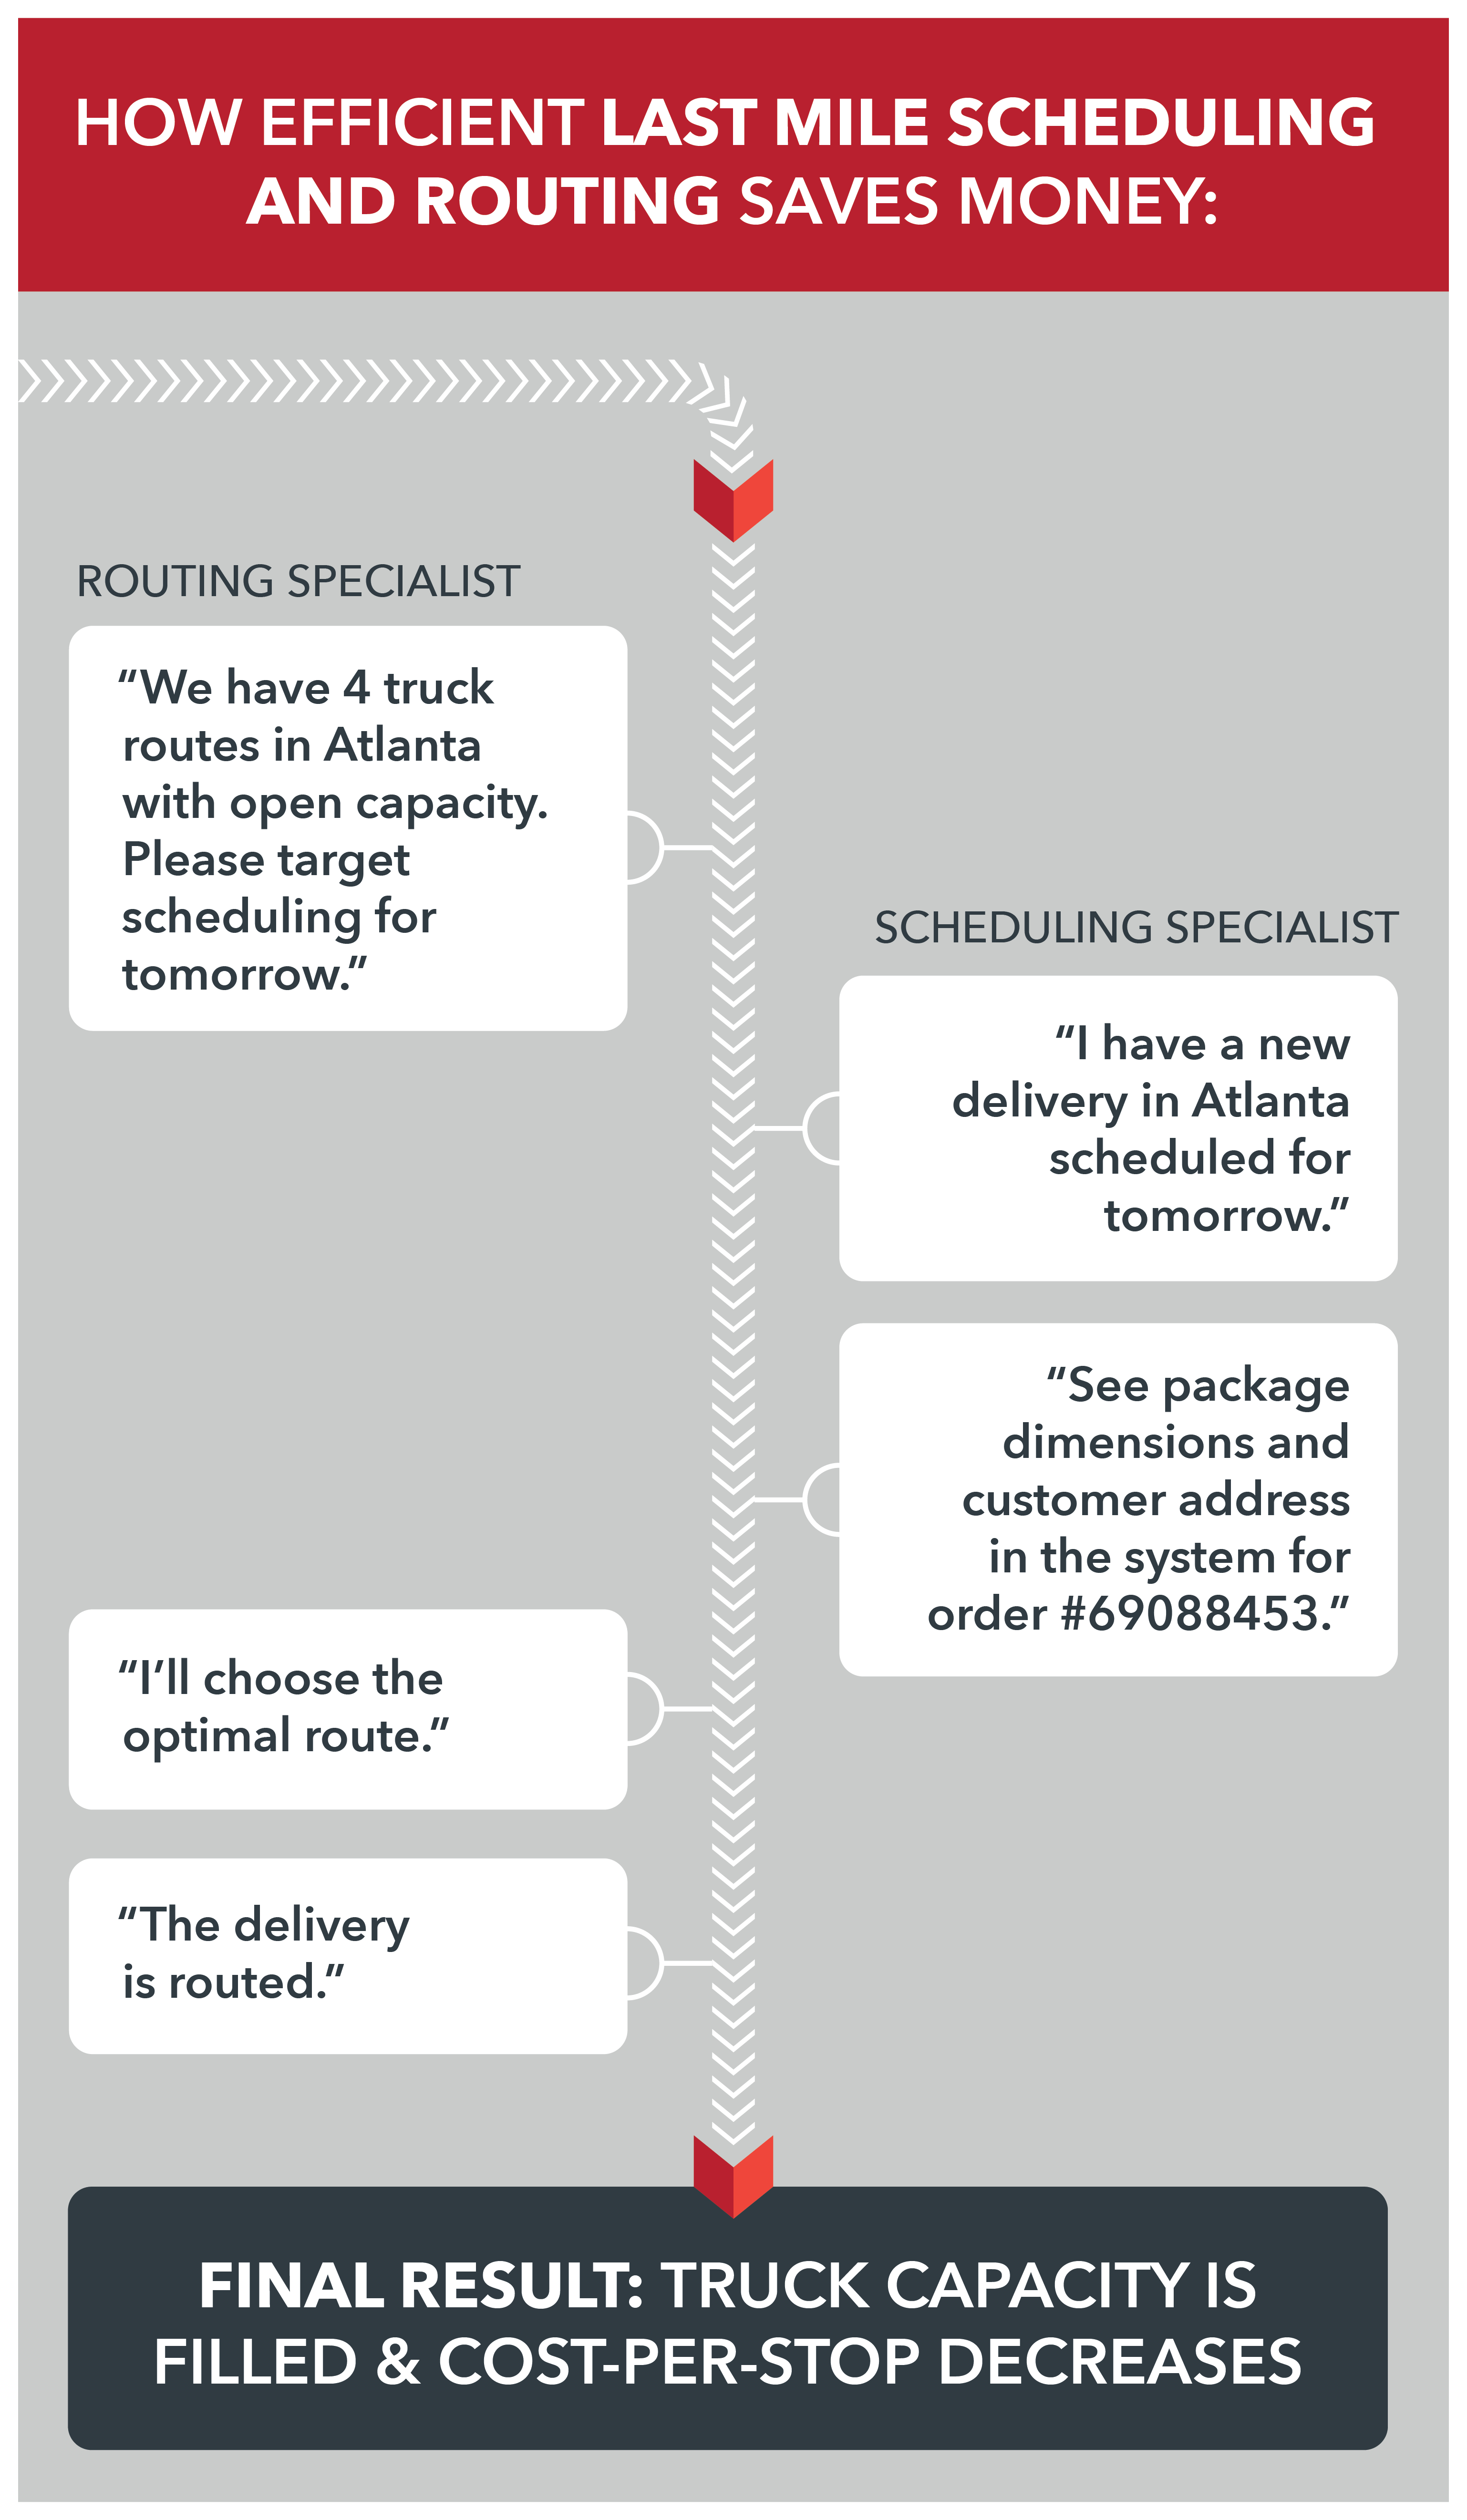 How efficient last mile scheduling reduces last mile delivery costs